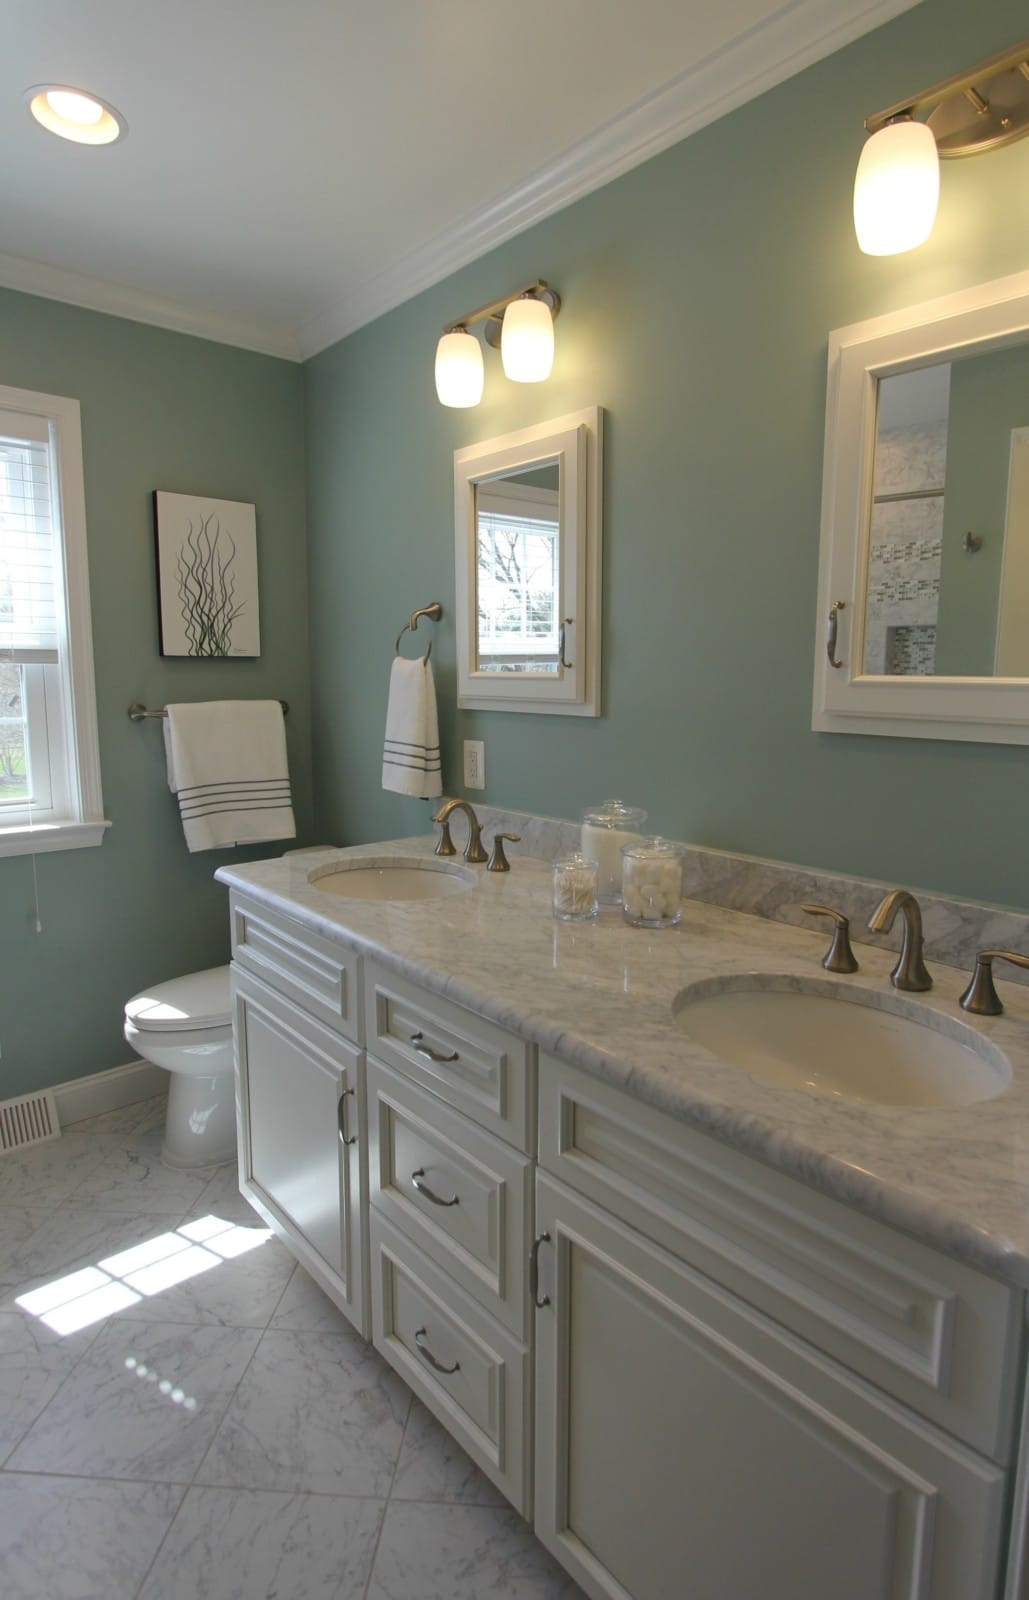 Carrera Marble Bathrooms Pictures: Bathroom Remodeling - Sage Green Carrera Marble